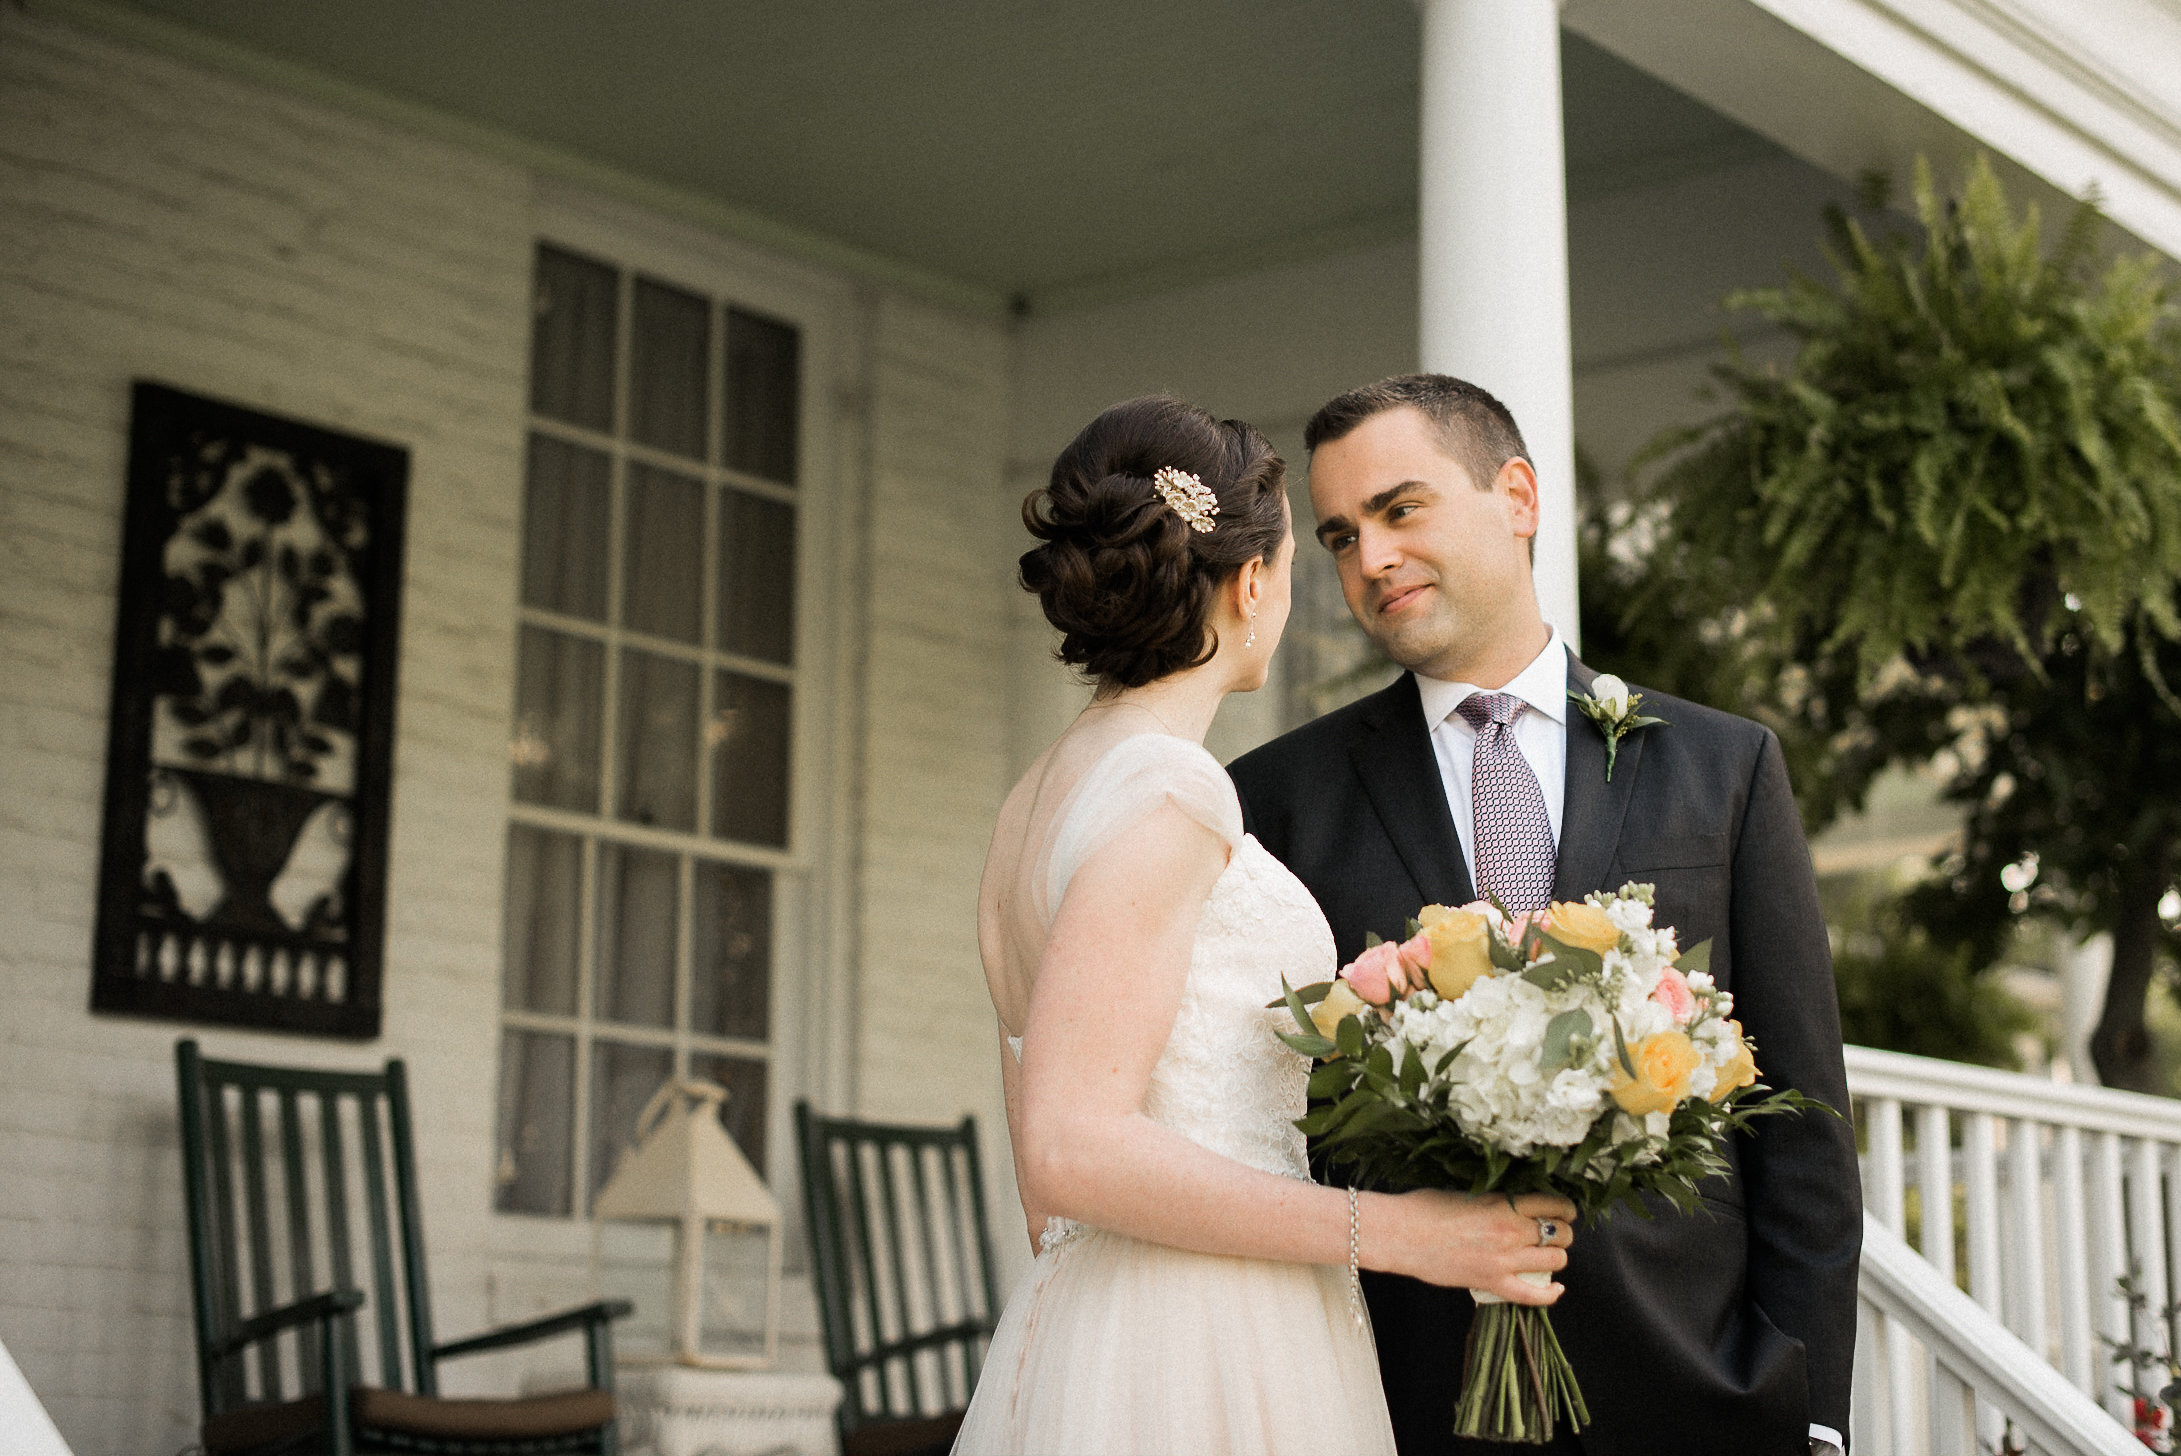 Groom looking at bride on porch